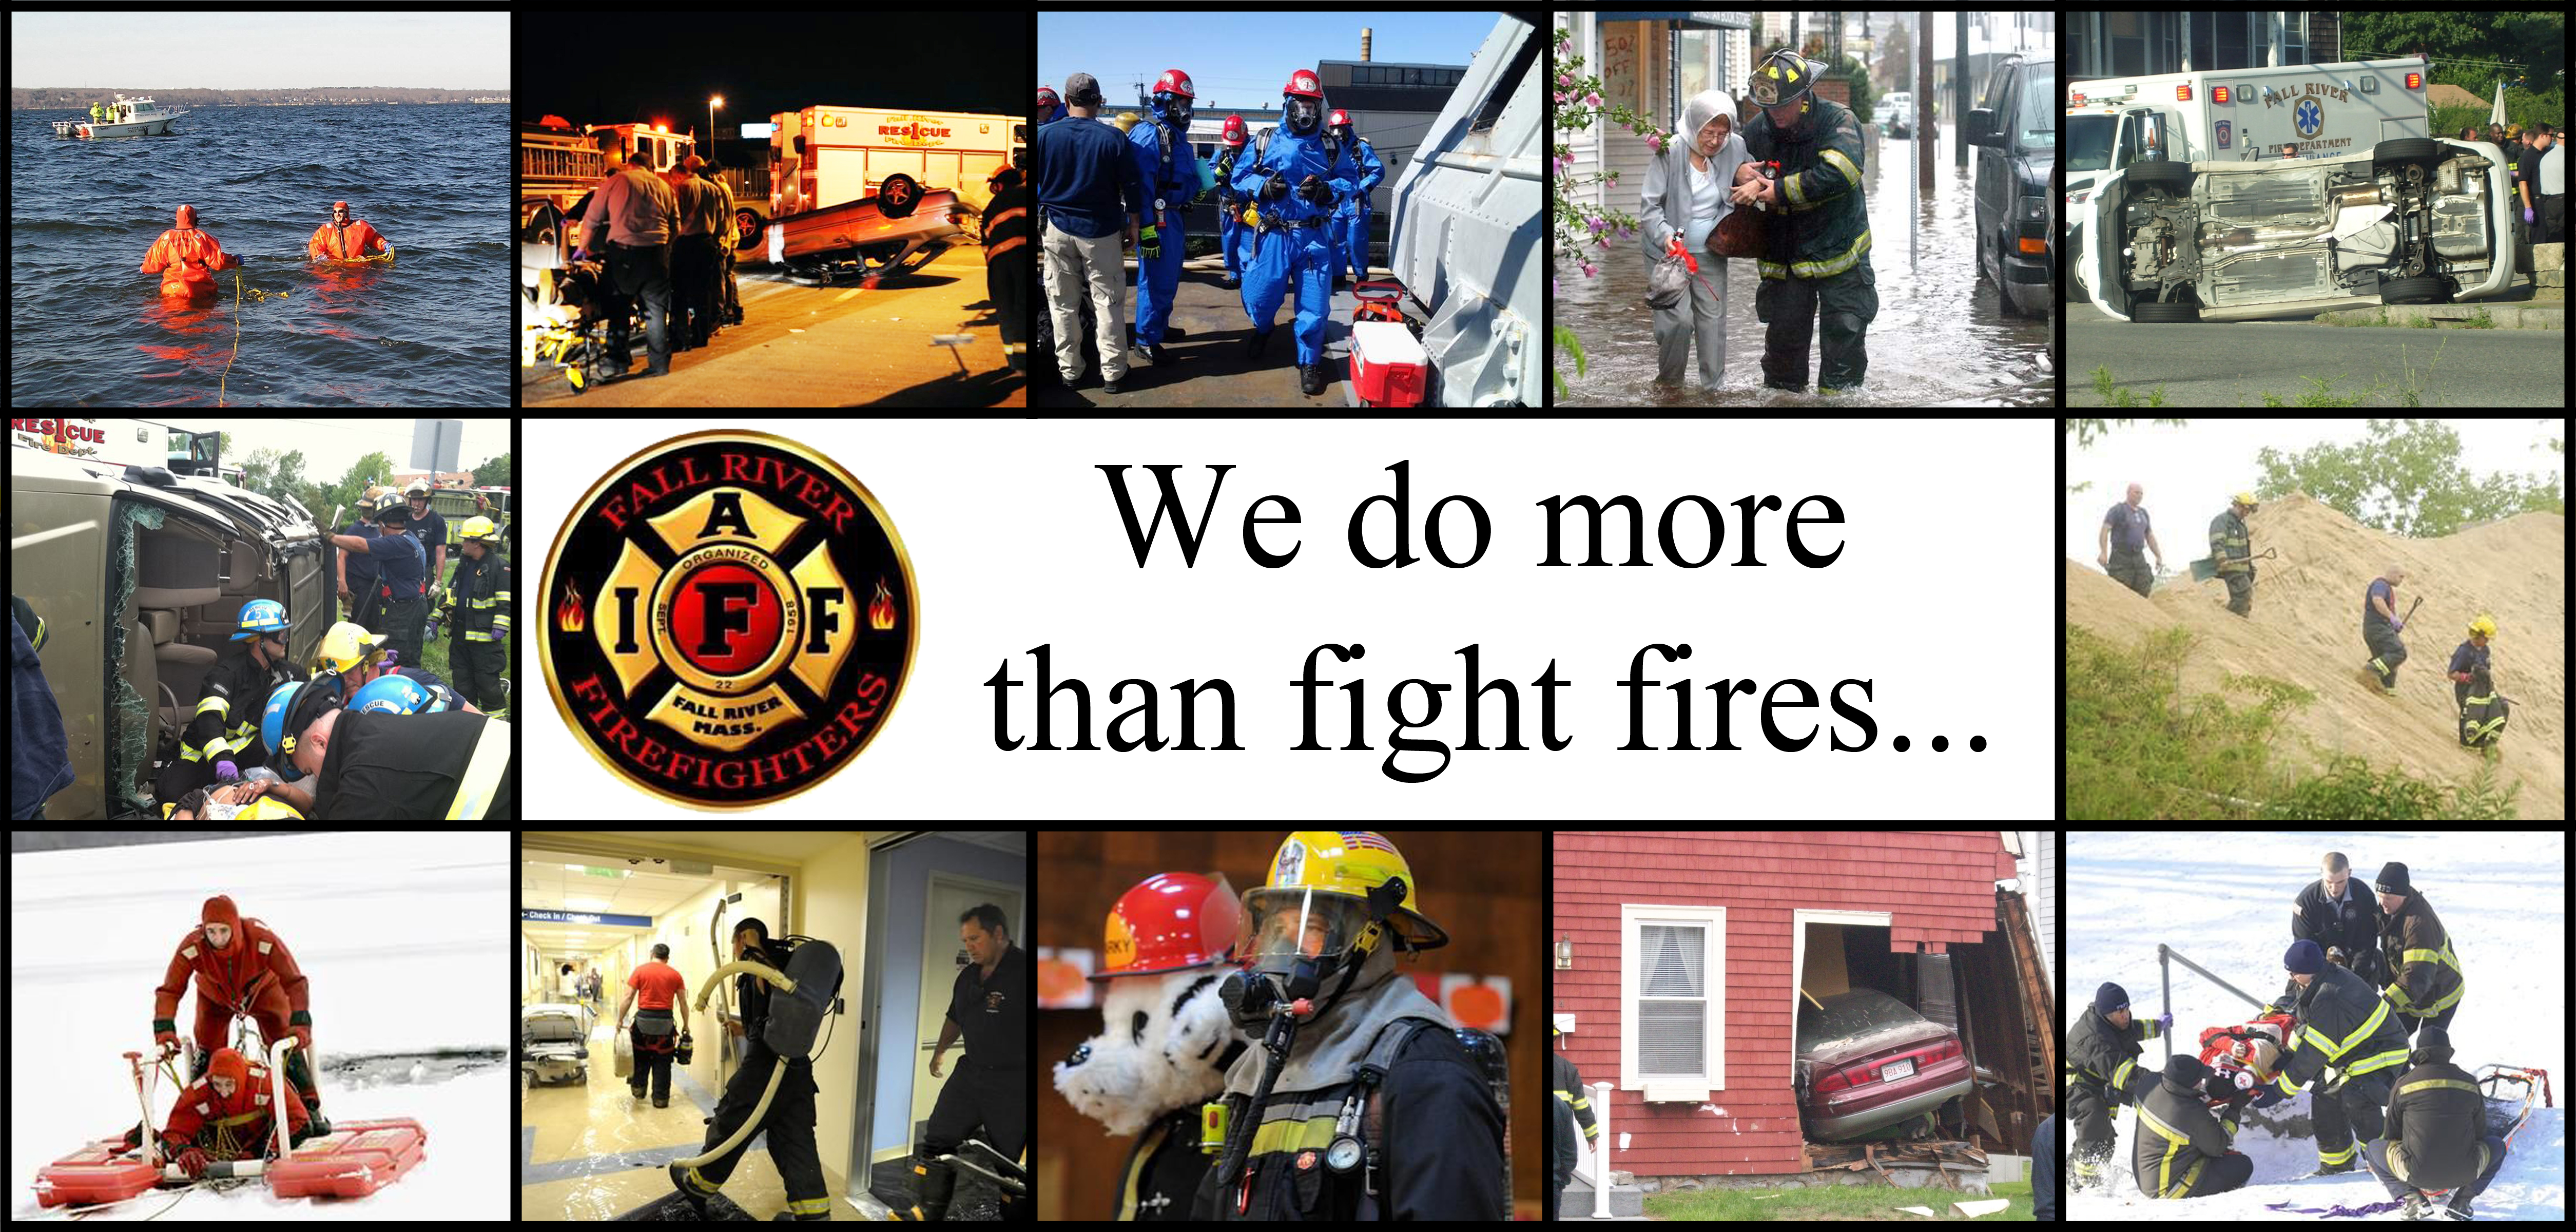 we do more than fight fires